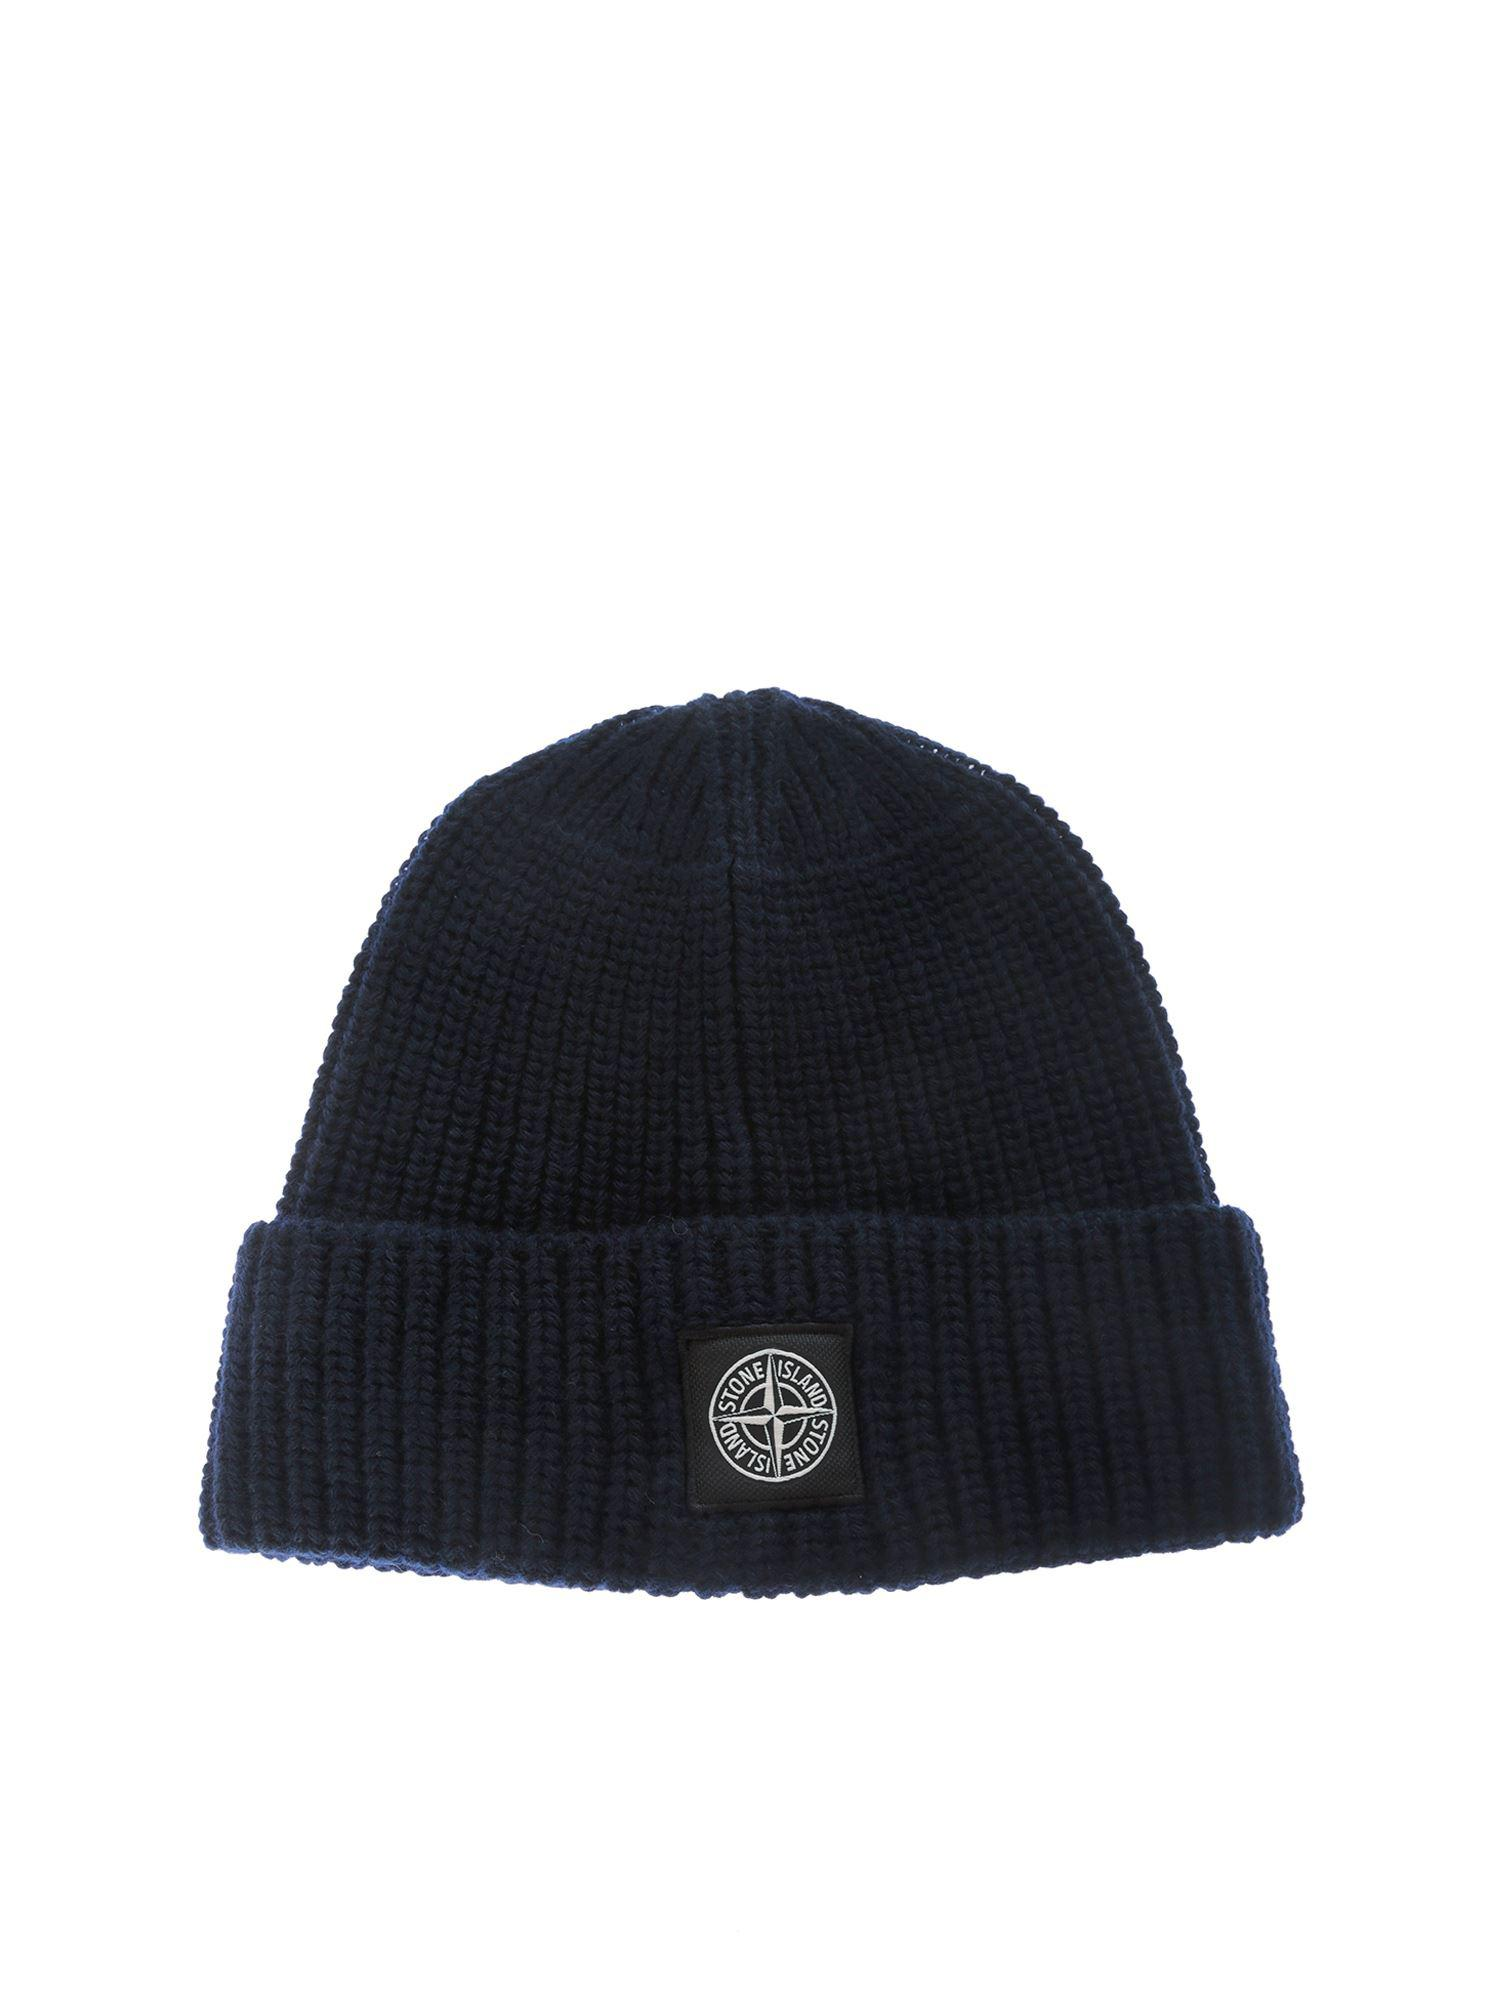 11e714608 Lyst - Stone Island Dark Blue Ribbed Wool Beanie in Blue for Men